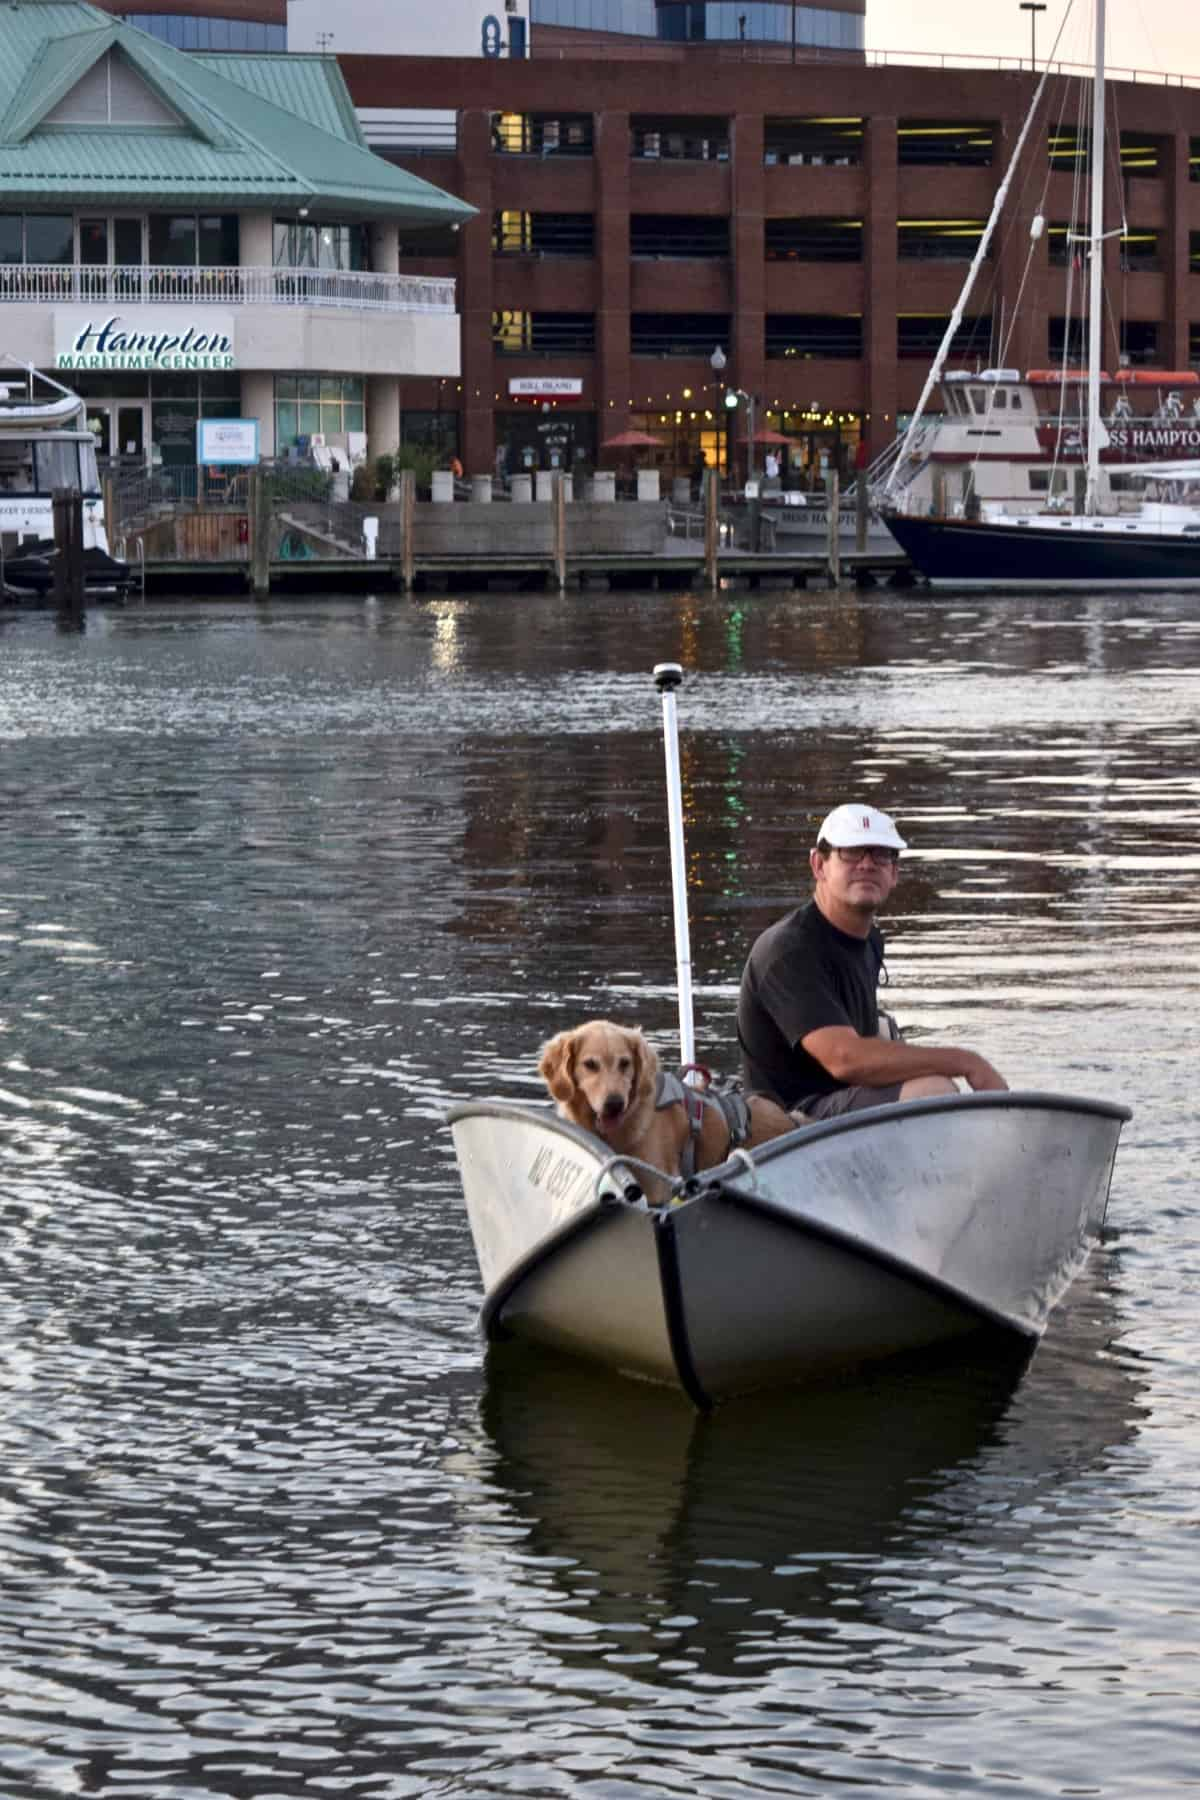 Golden retriever in dinghy with man.